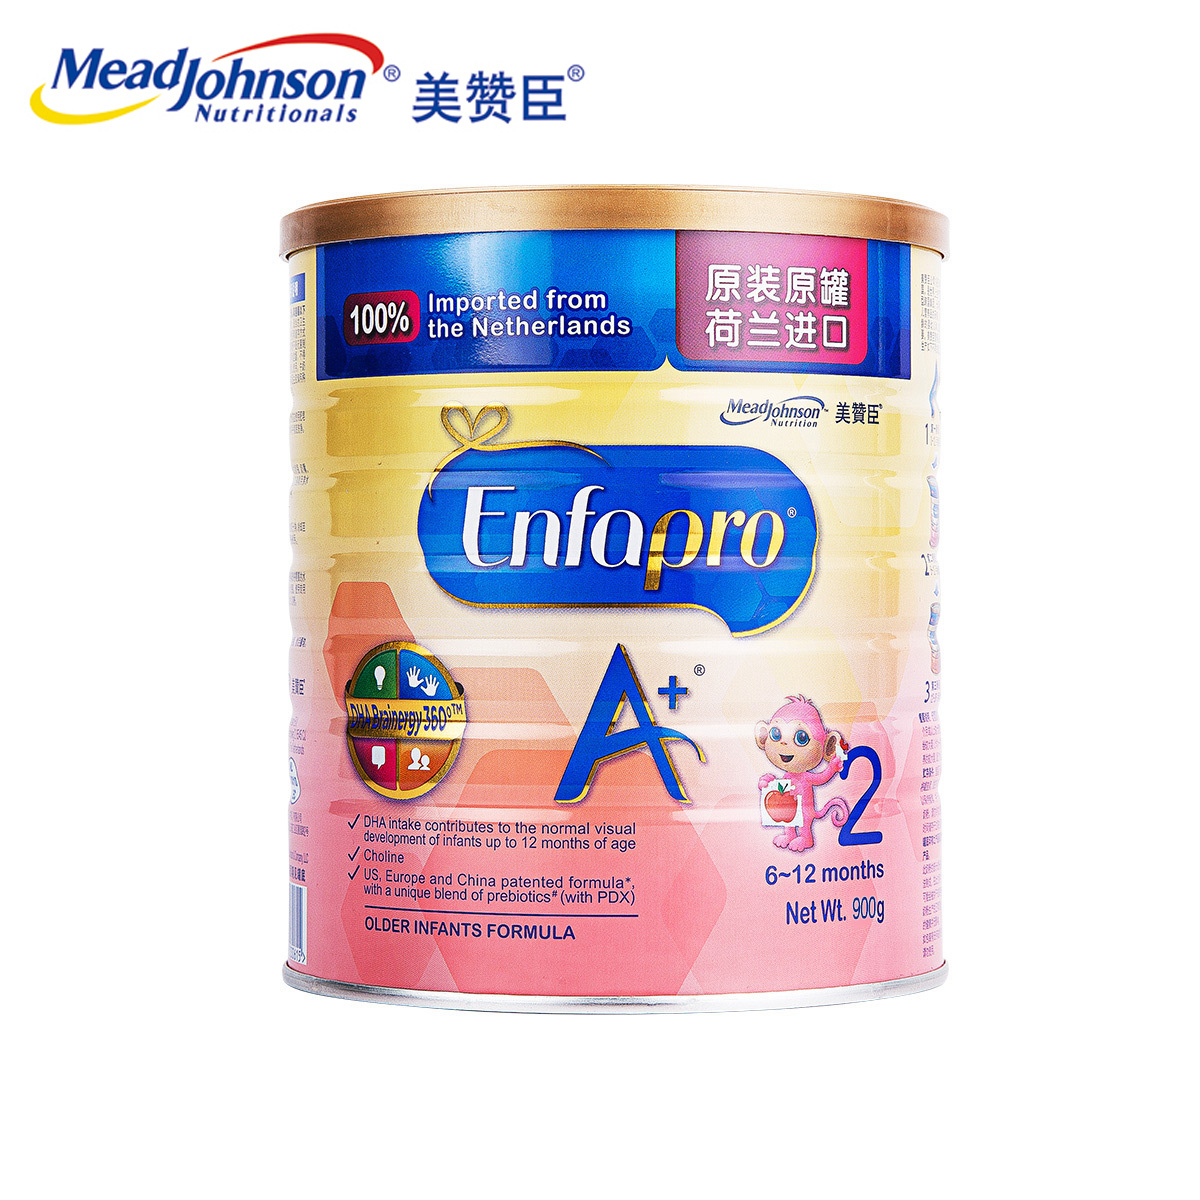 Mead Johnson 美讚臣 Enfapro A 900g 二段